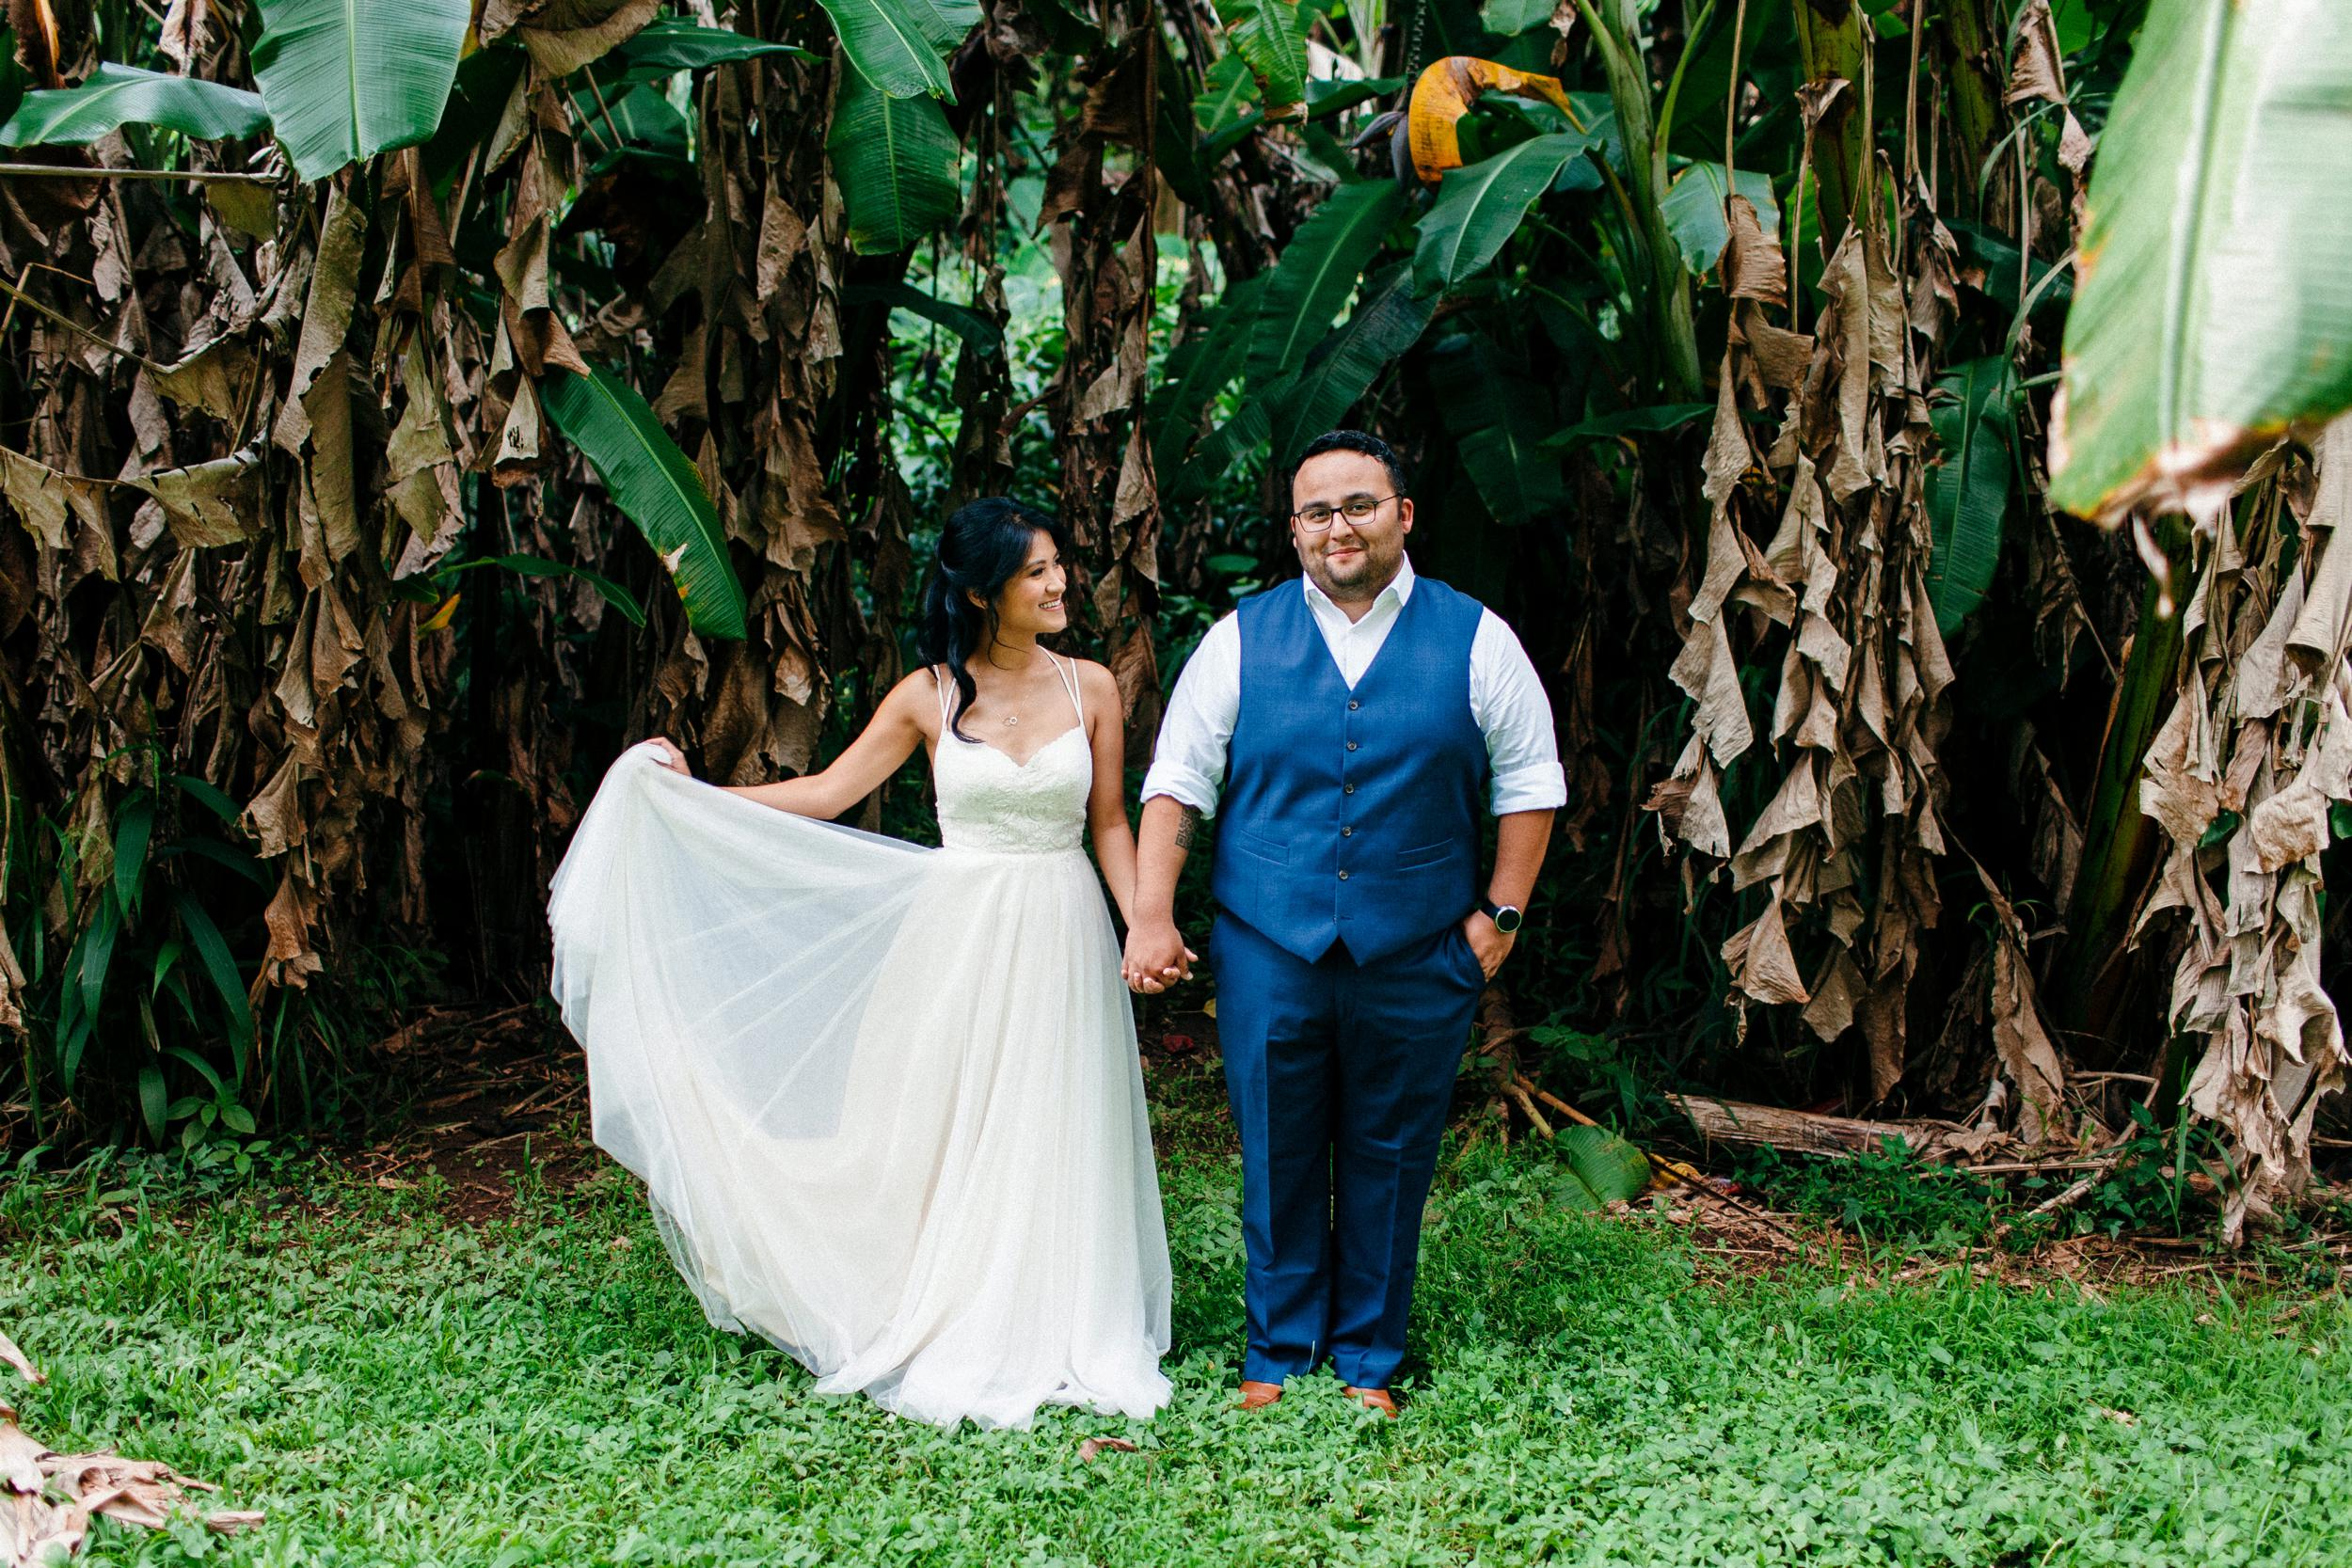 Amy and Danny - Are Married at Sacred Garden